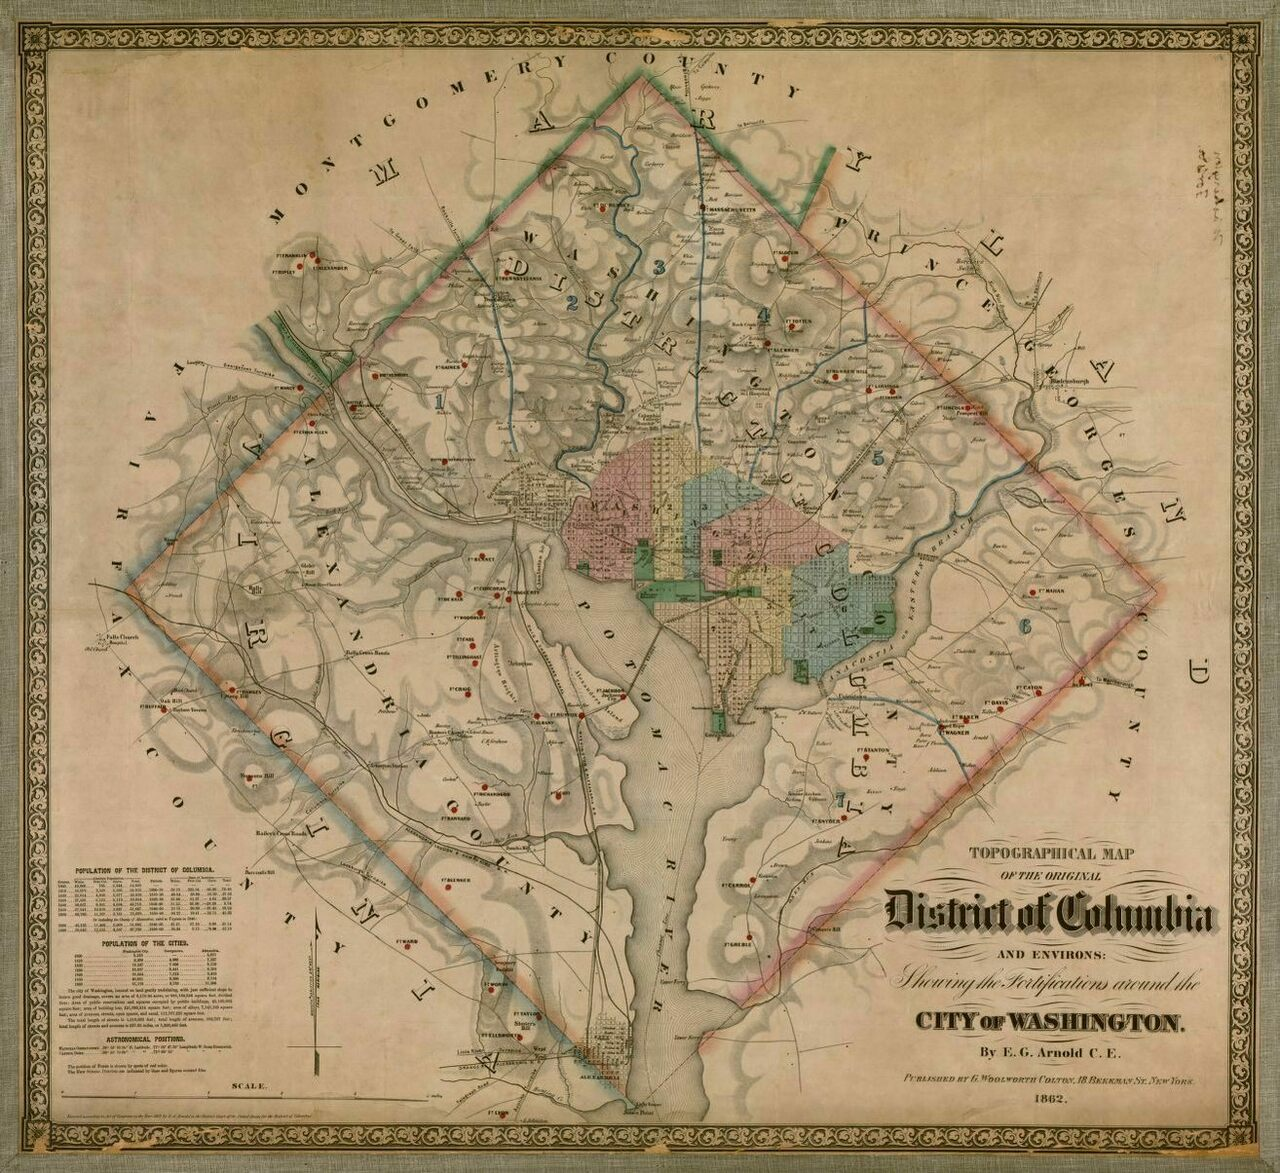 As shown in this 1862 map, published by G. Woolworth Colton, the District of Columbia was designed to be a perfect square, 10 miles on a side.